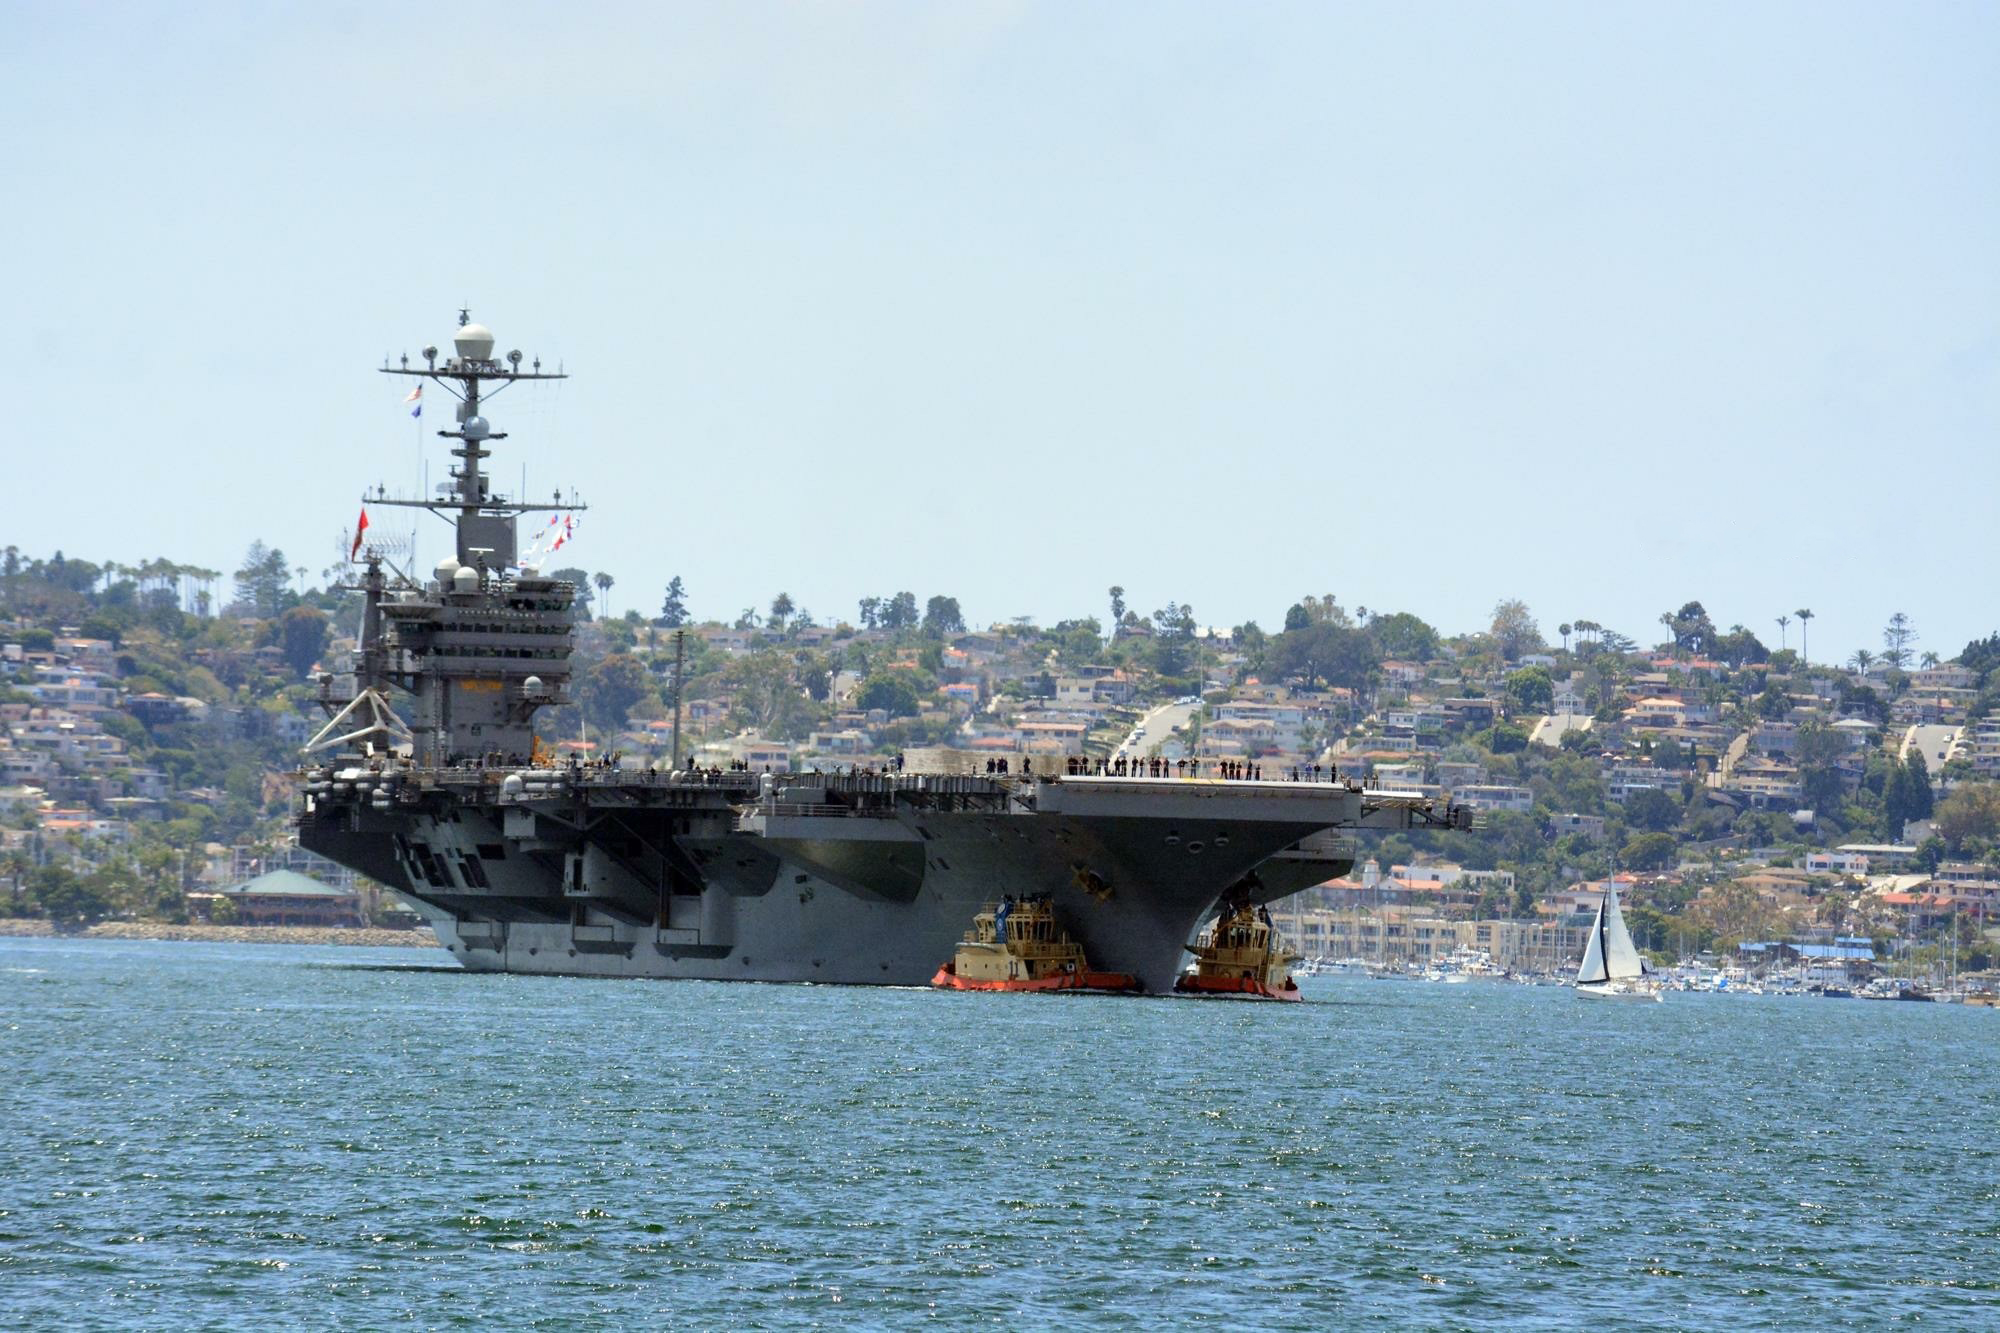 The Nimitz-class aircraft carrier USS Carl Vinson (CVN 70). (Photo: Diaa Bekheet)